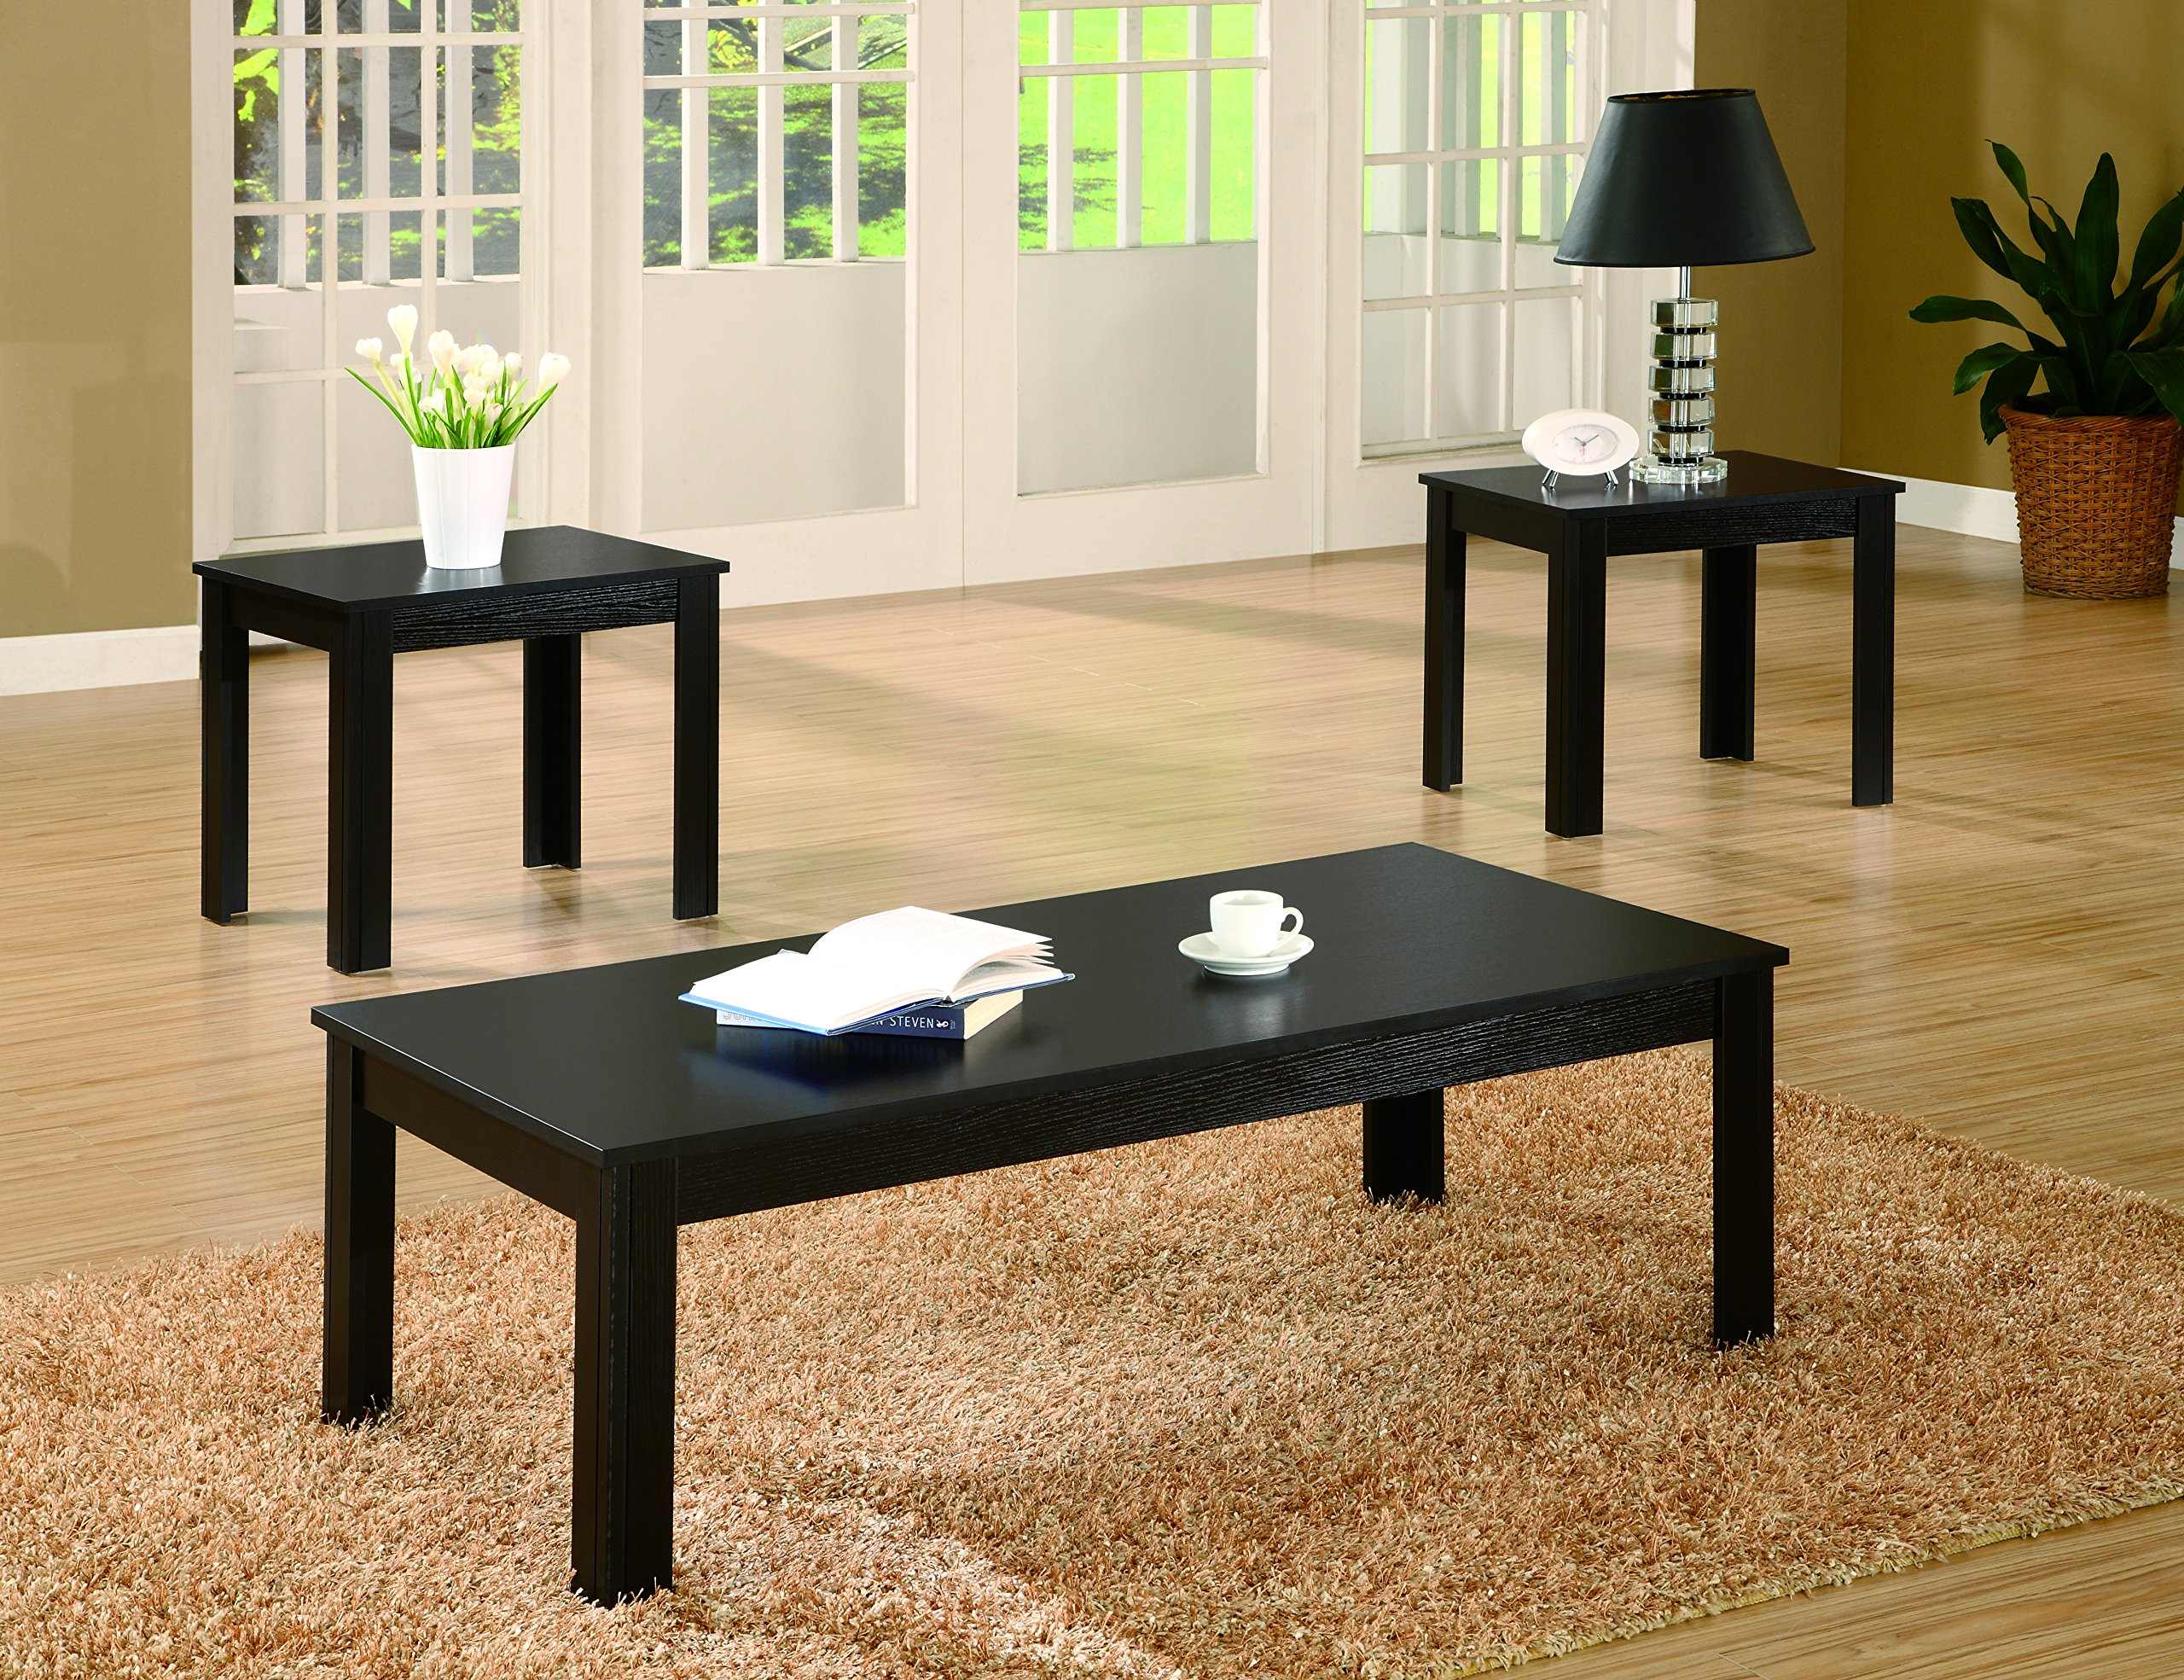 Coaster Home Furnishings 3-piece Occasional Table Set Black by Coaster Home Furnishings